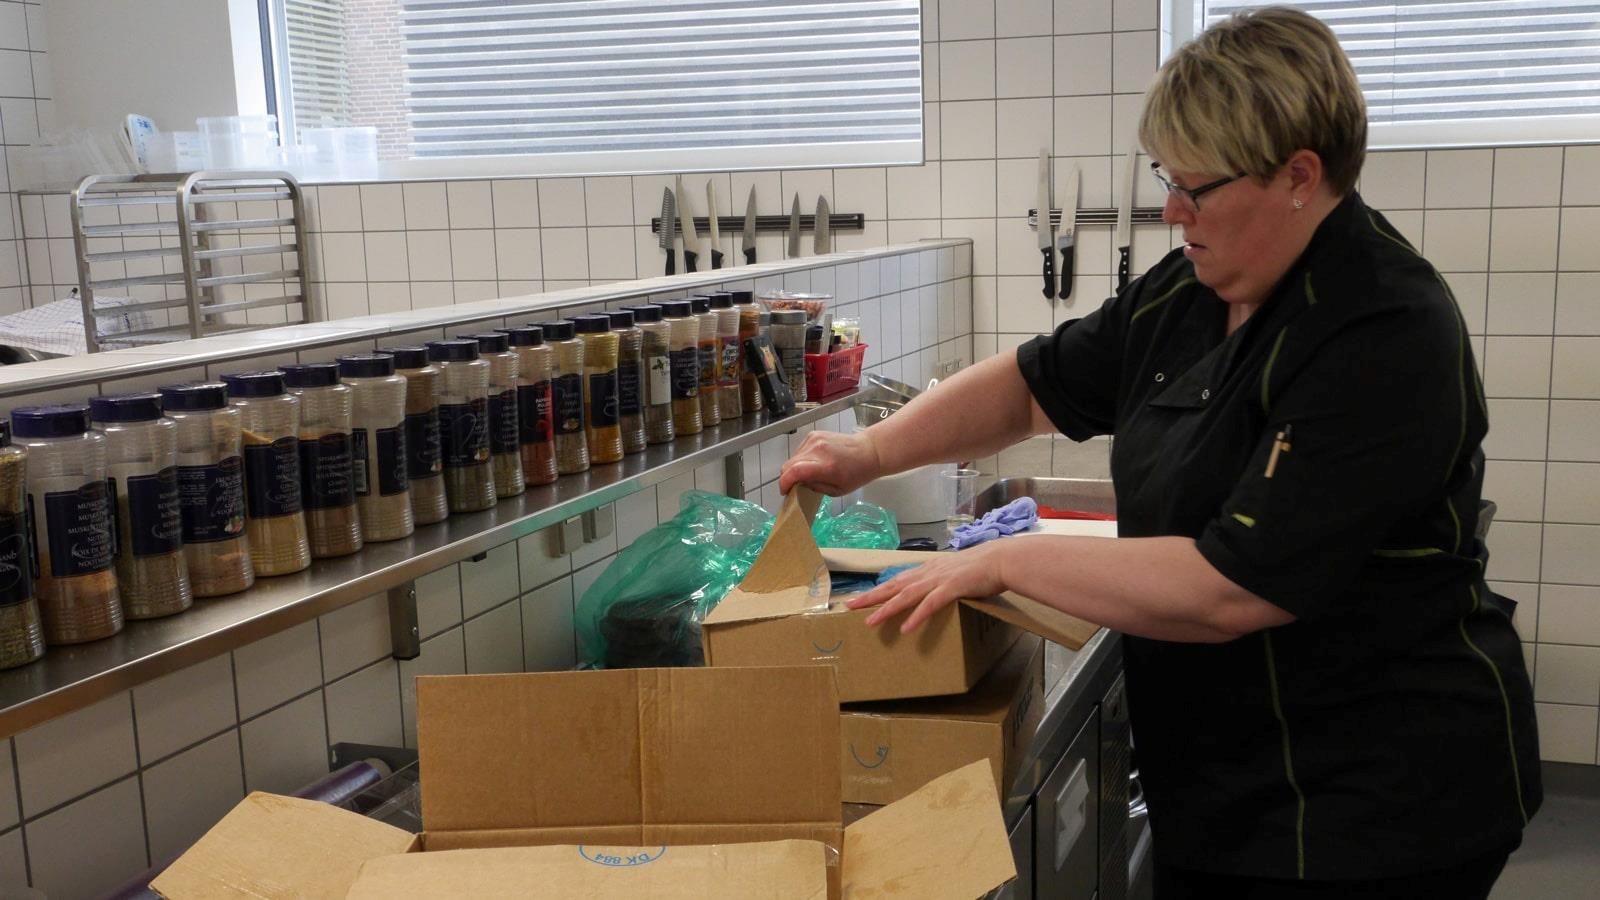 Canteen employee opening cardboard boxes with Tulip meat products